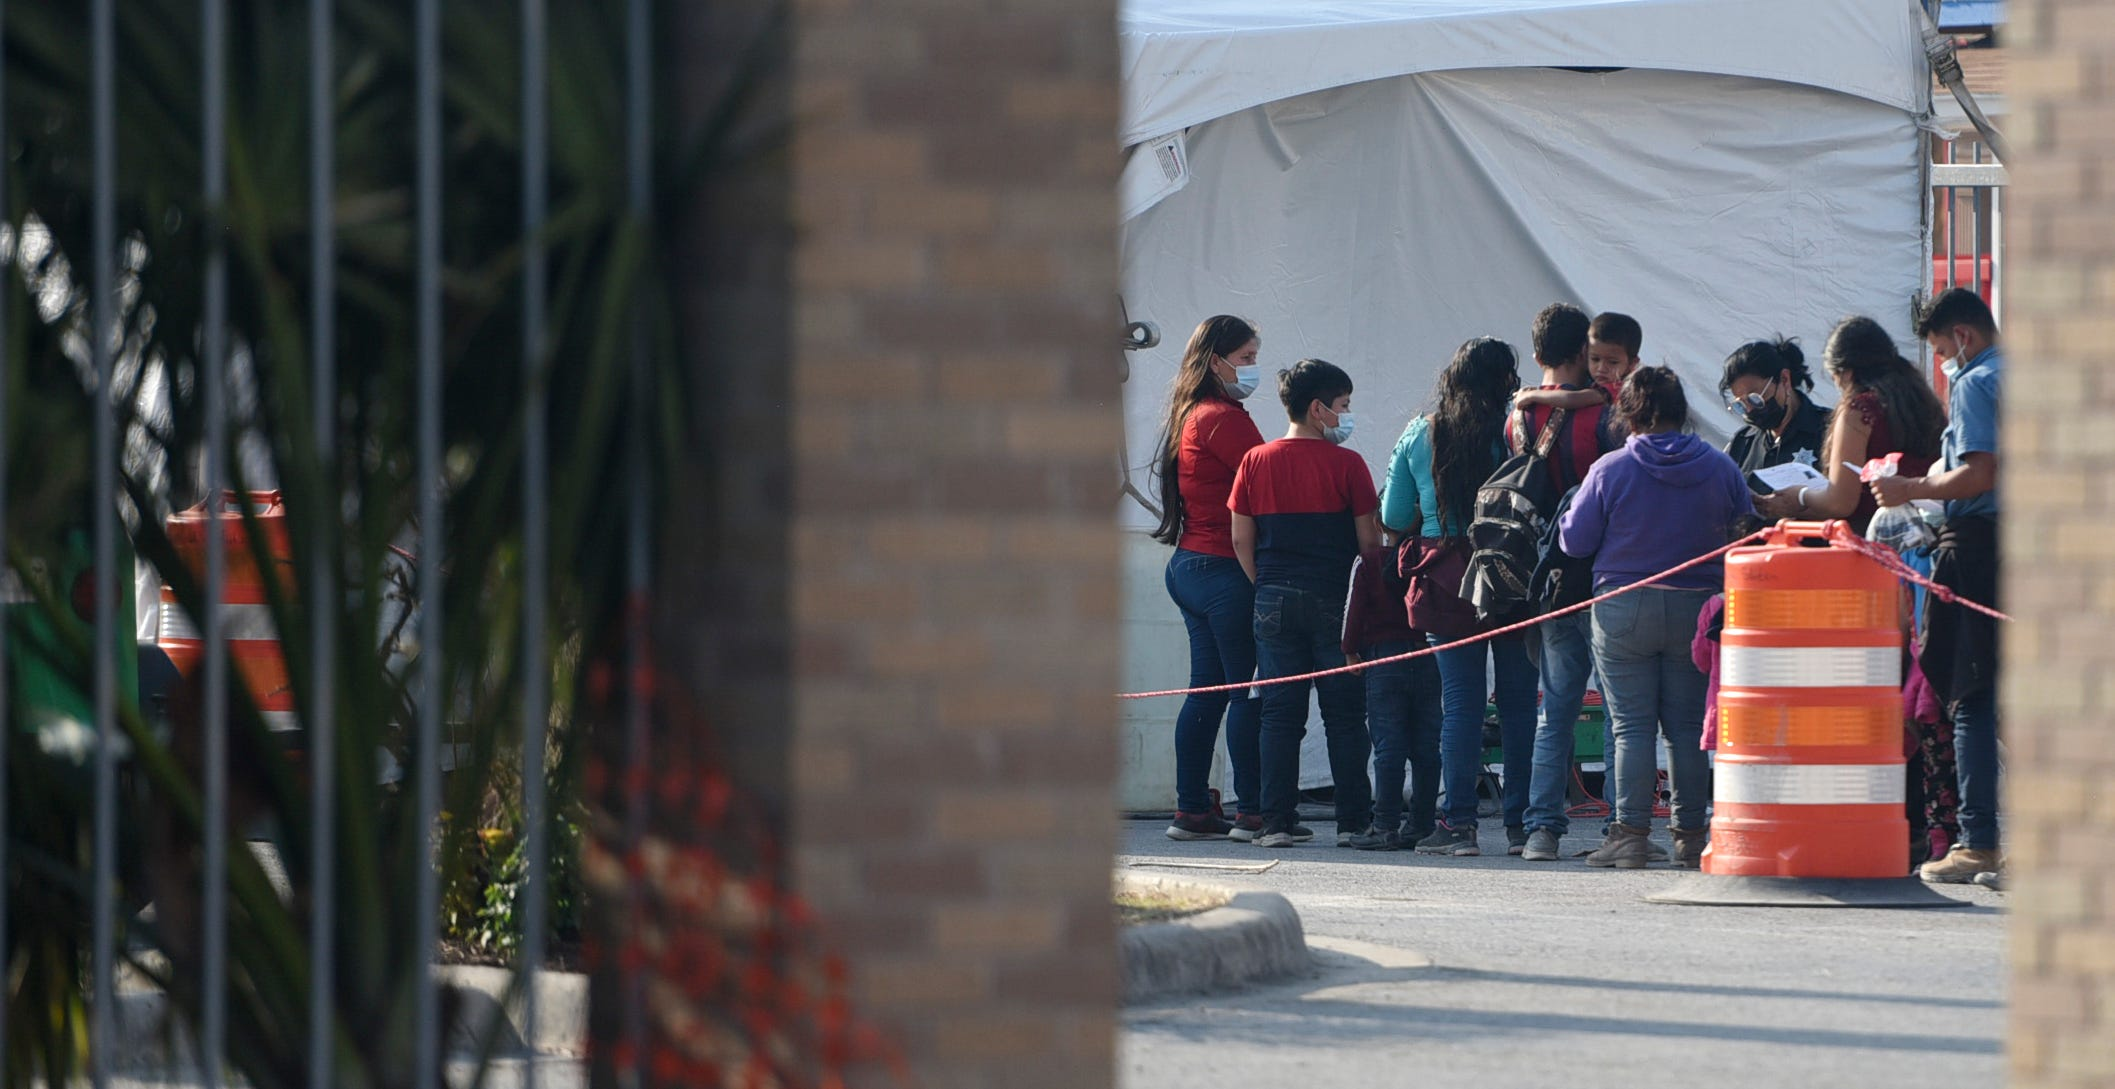 Migrants check in to be tested for the coronavirus April 9 in McAllen, Texas. The temporary tents are used to test all migrants before they travel to their asylum sponsors.